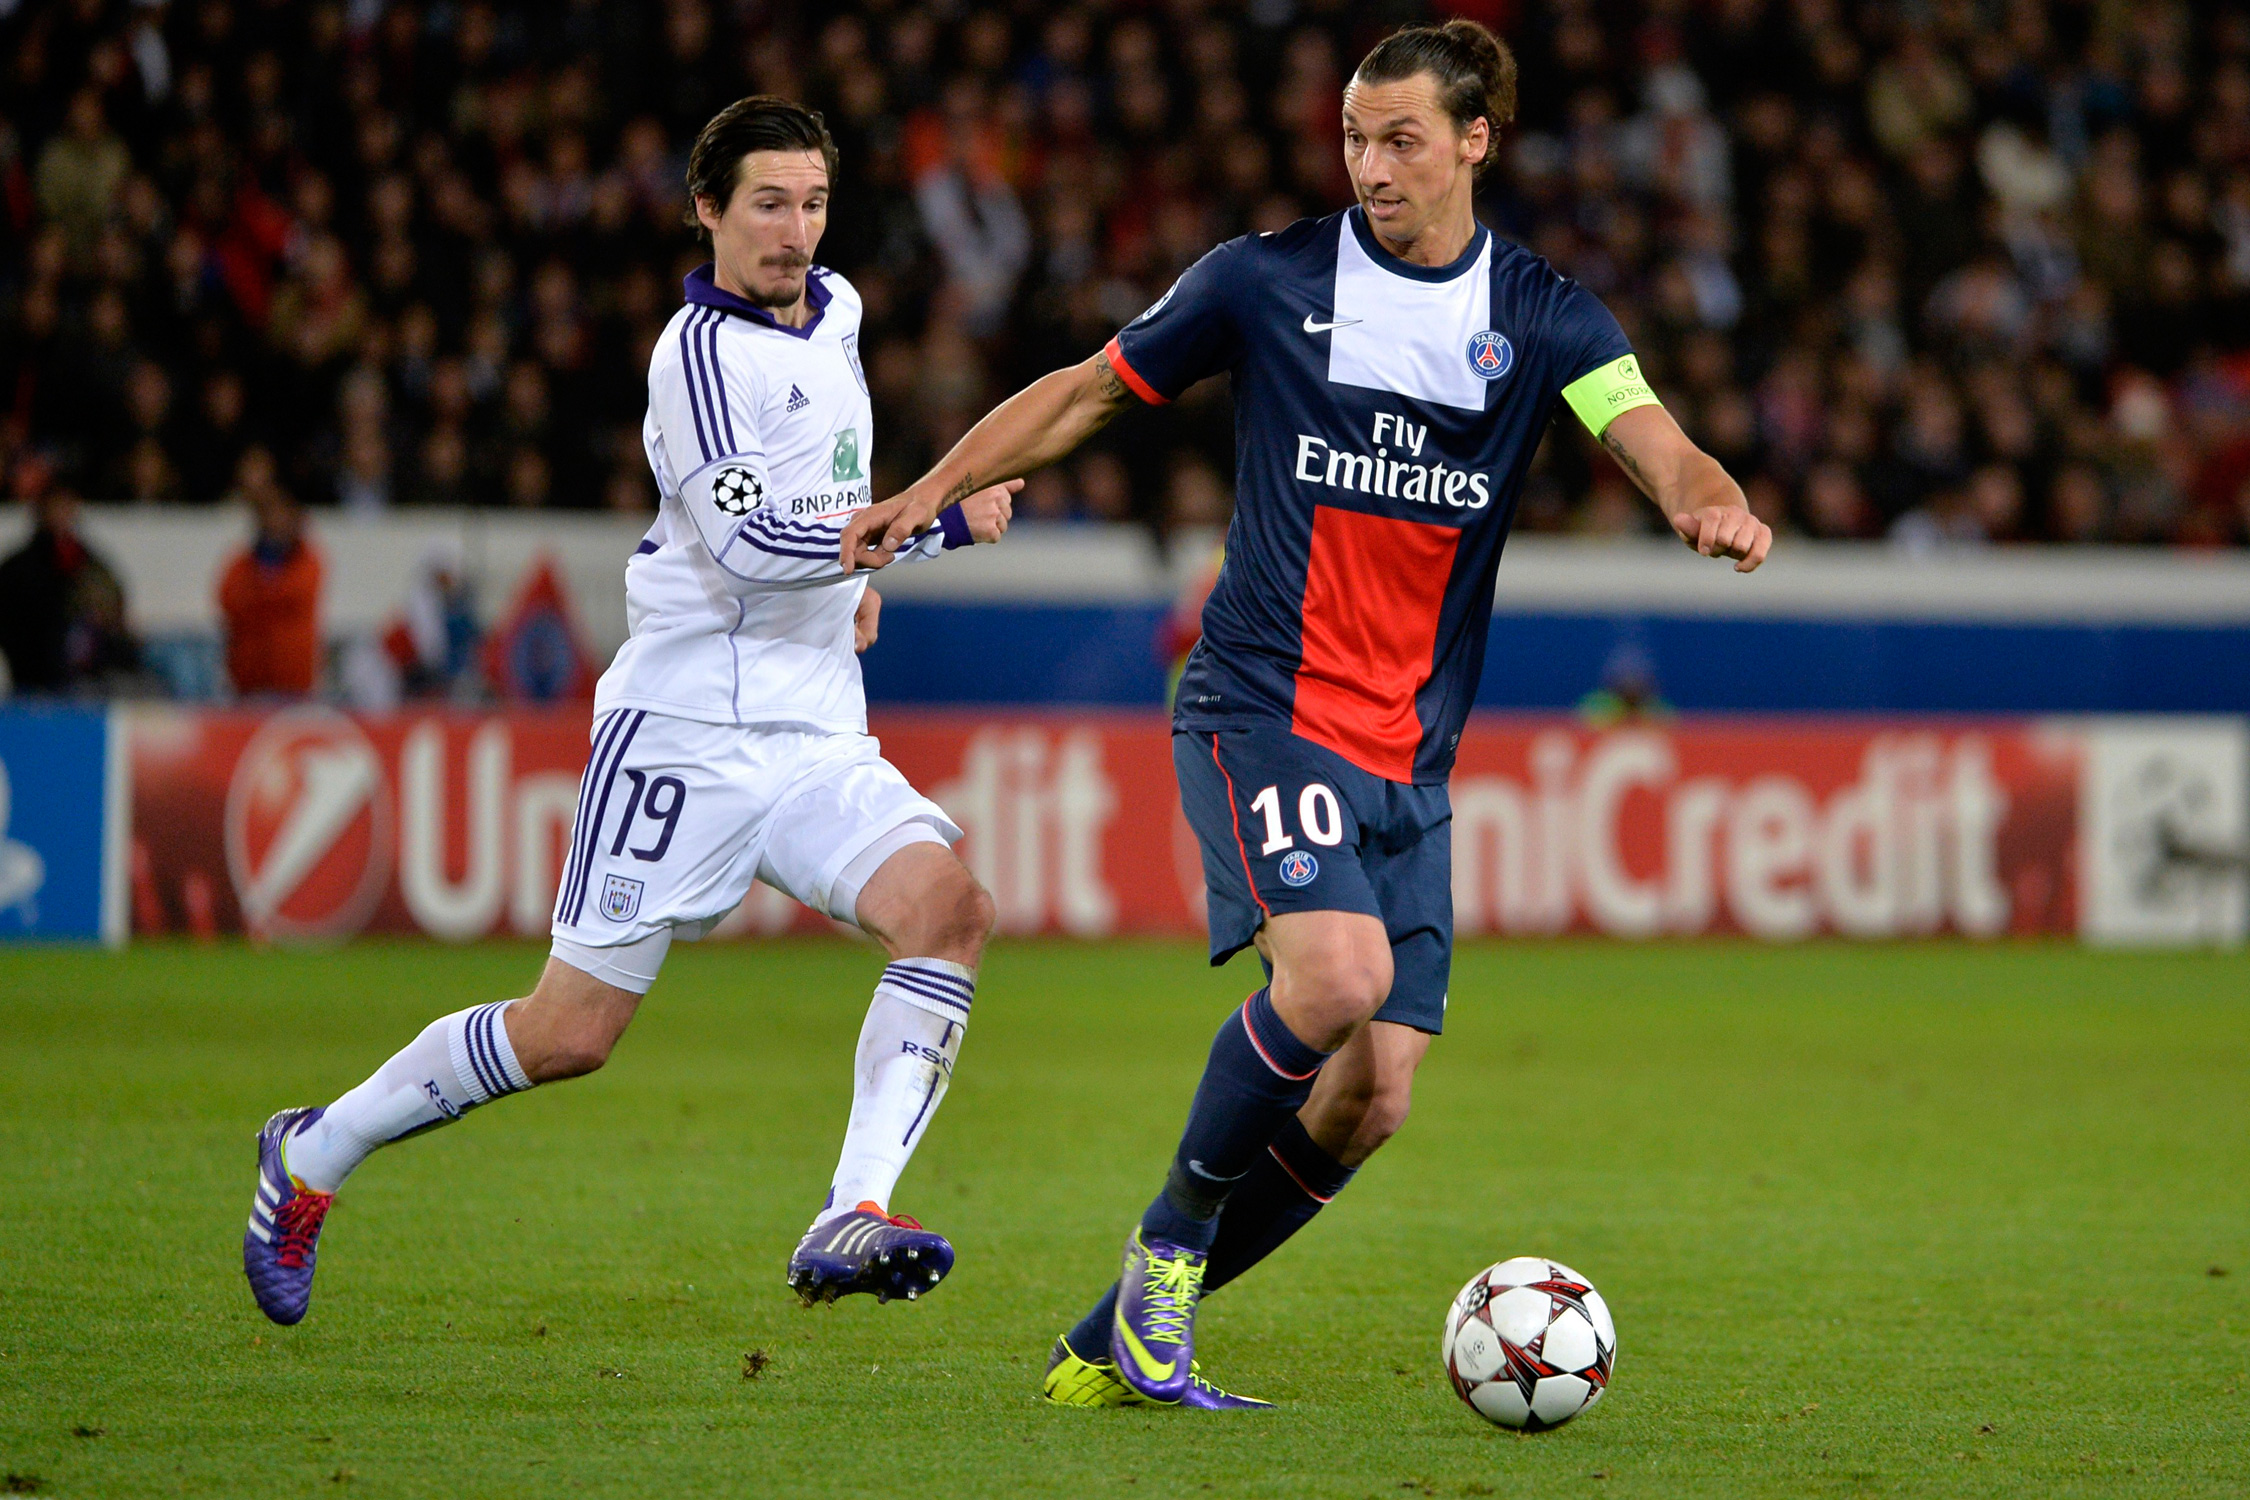 Anderlecht's Sacha Kljestan chases down PSG's Zlatan Ibrahimovic in a Champions League group match in 2013.